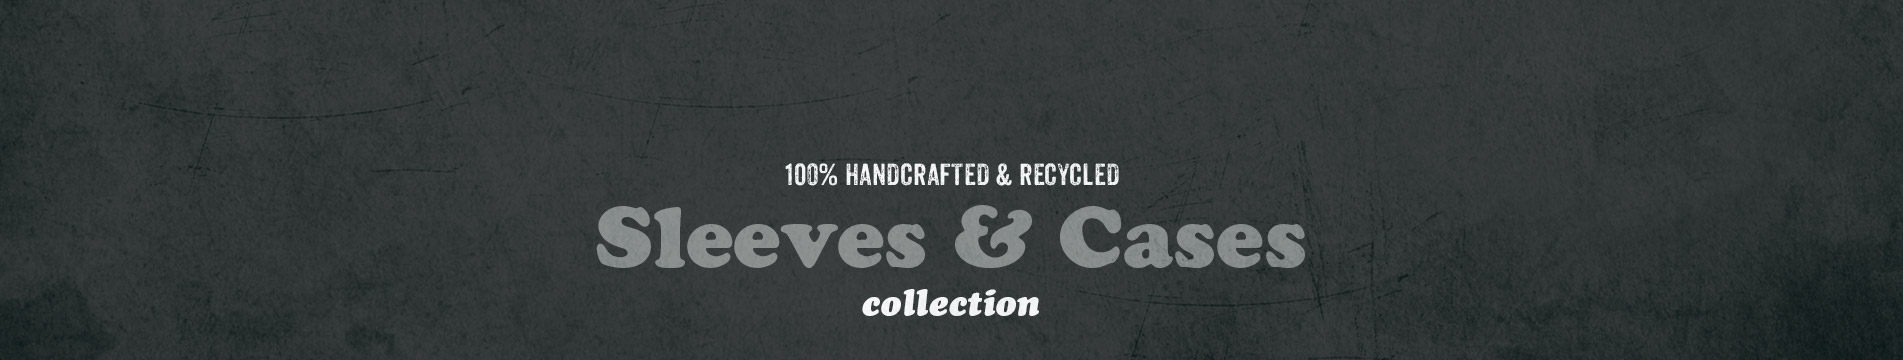 Handmade Recycled Sleeves & Cases